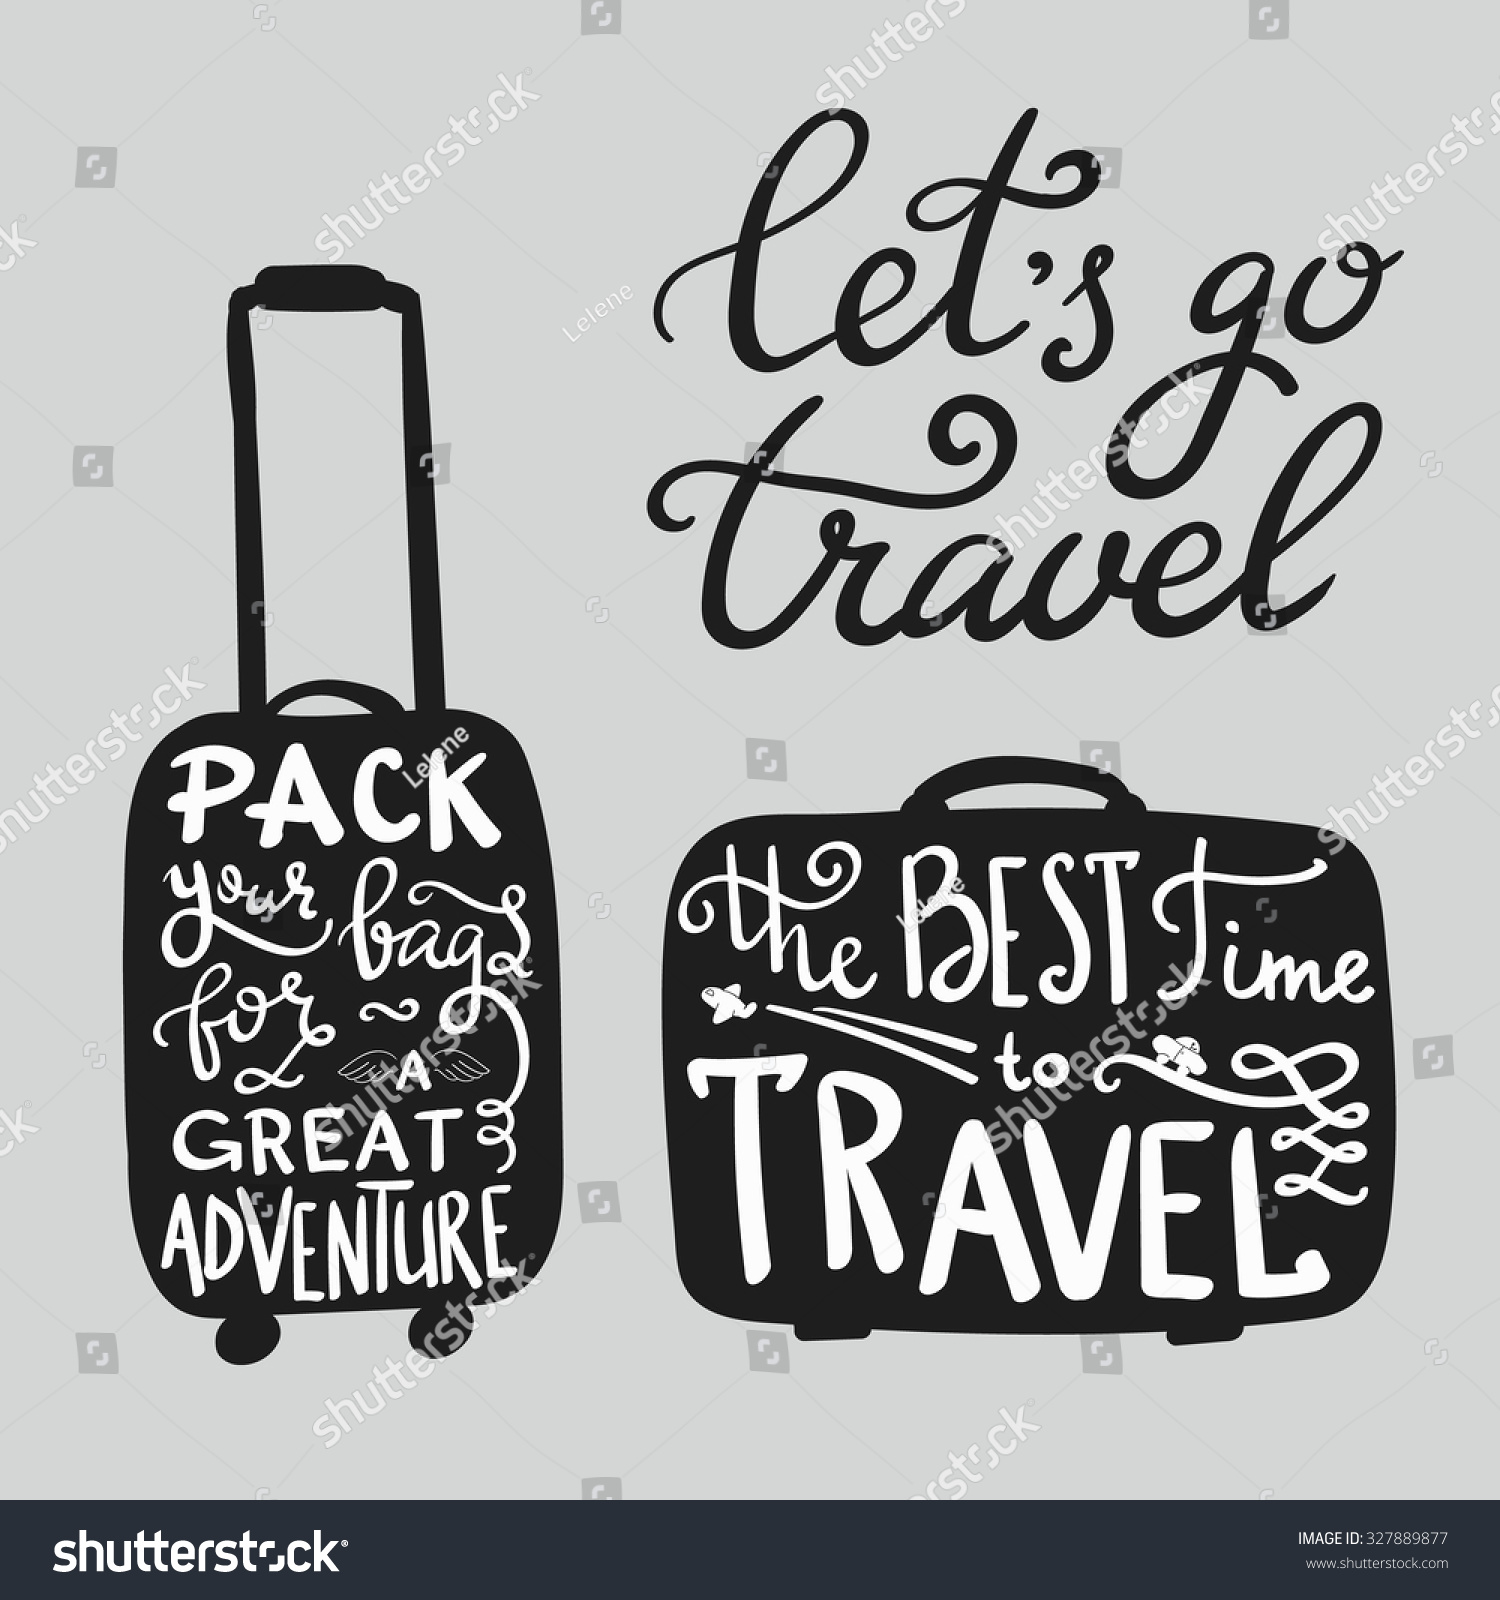 Travel Inspiration Quotes On Suitcase Silhouette Stock ...